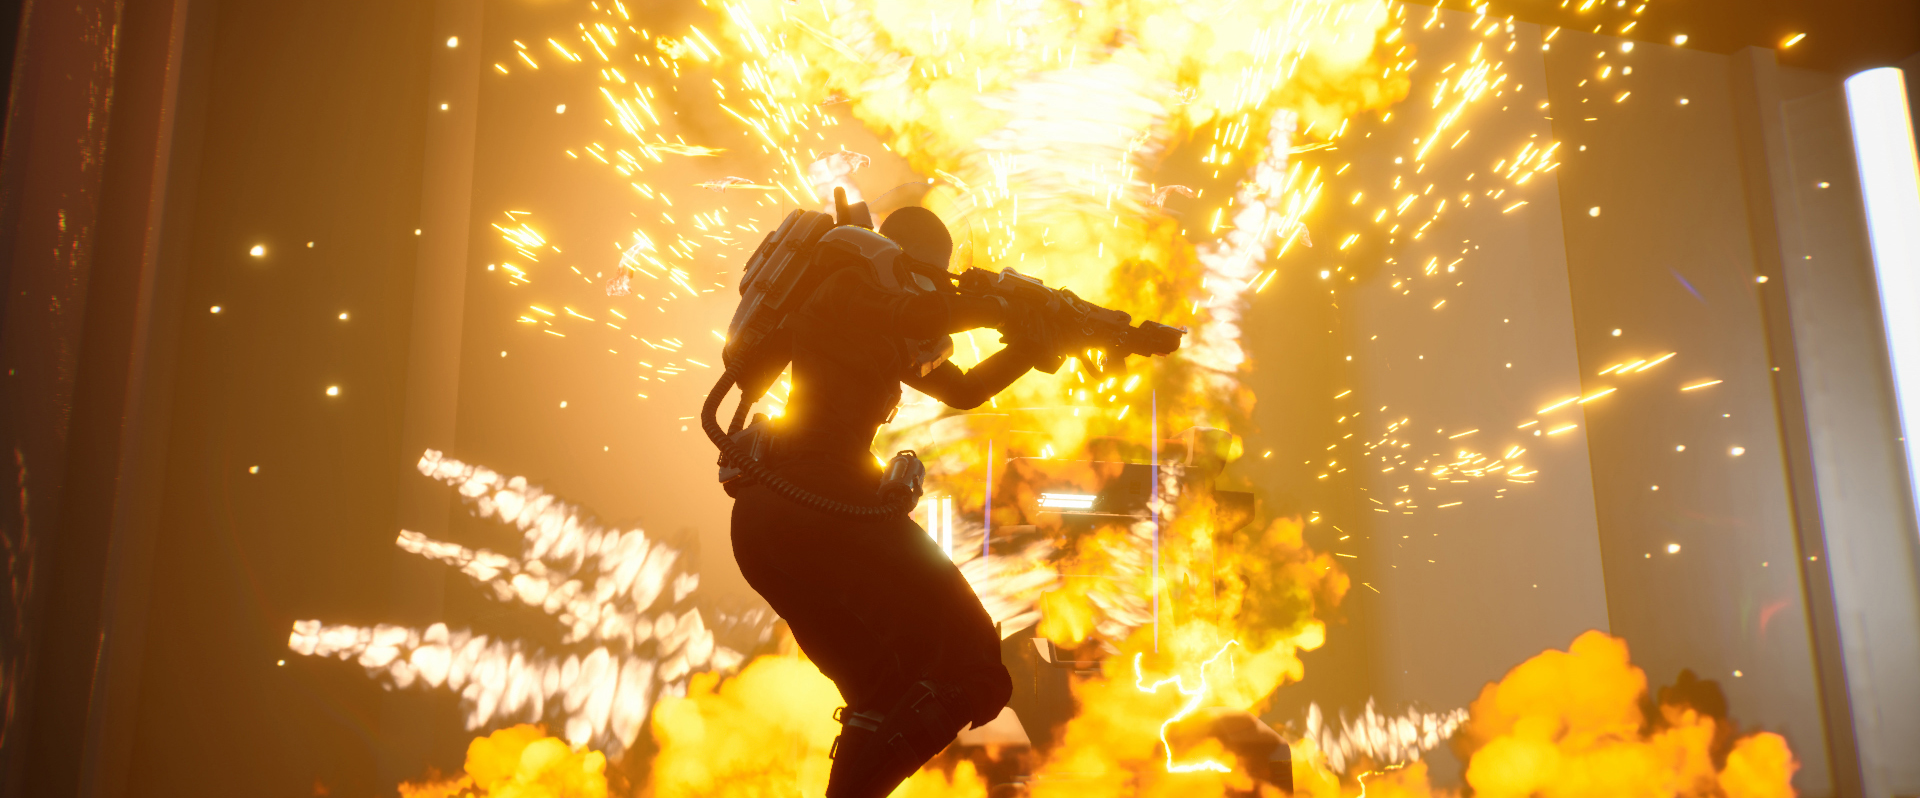 Screenshot from game Lemnis Gate. Character's silhouette appears in front of an exploding object.